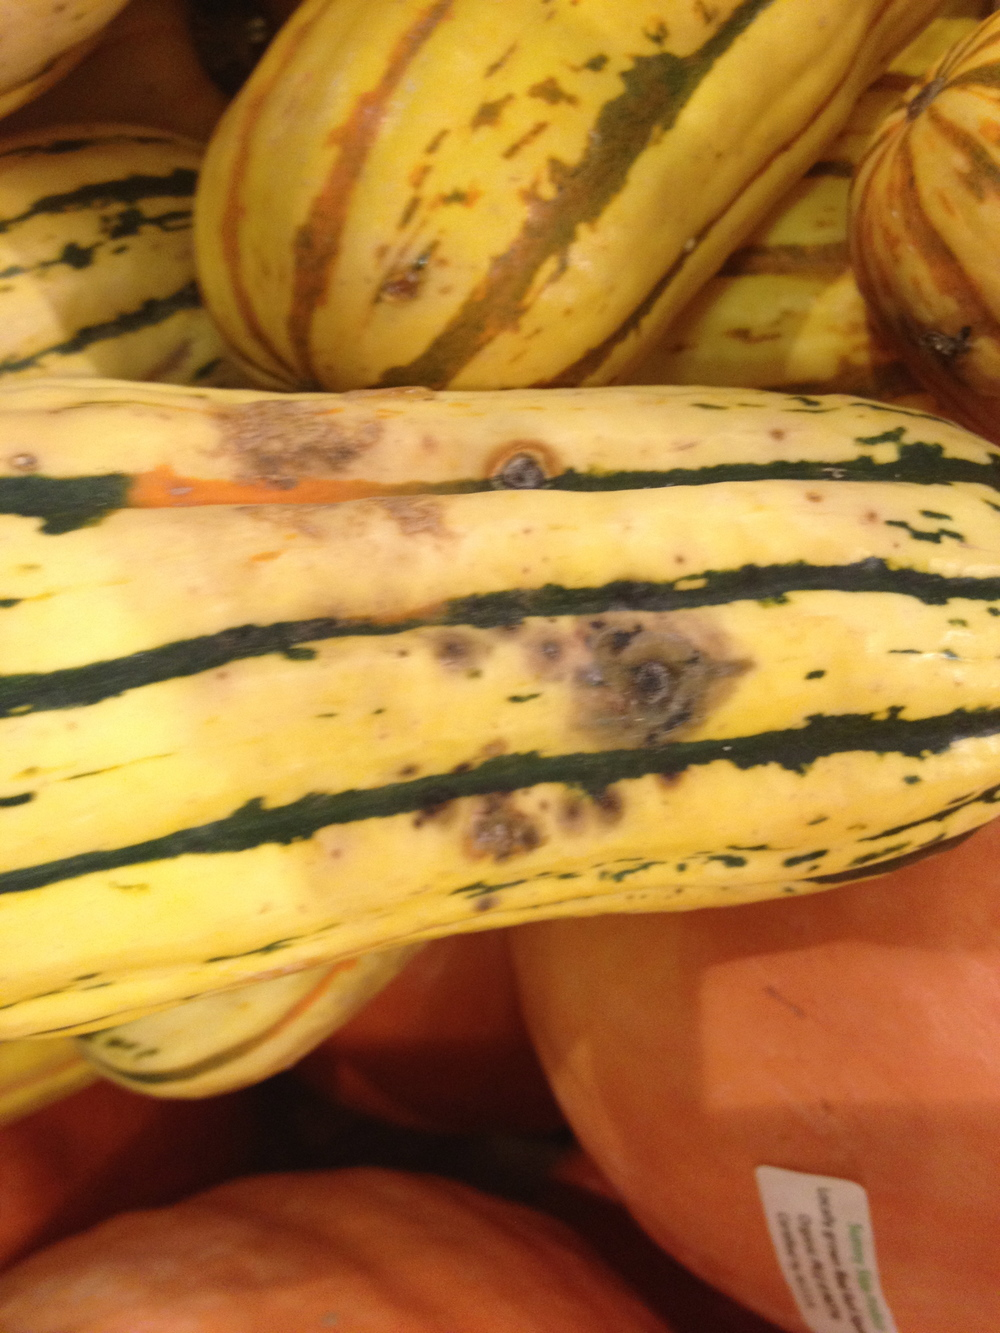 Watch out for bruised spots like this. But if your aged squash has 'em, just cut around it.